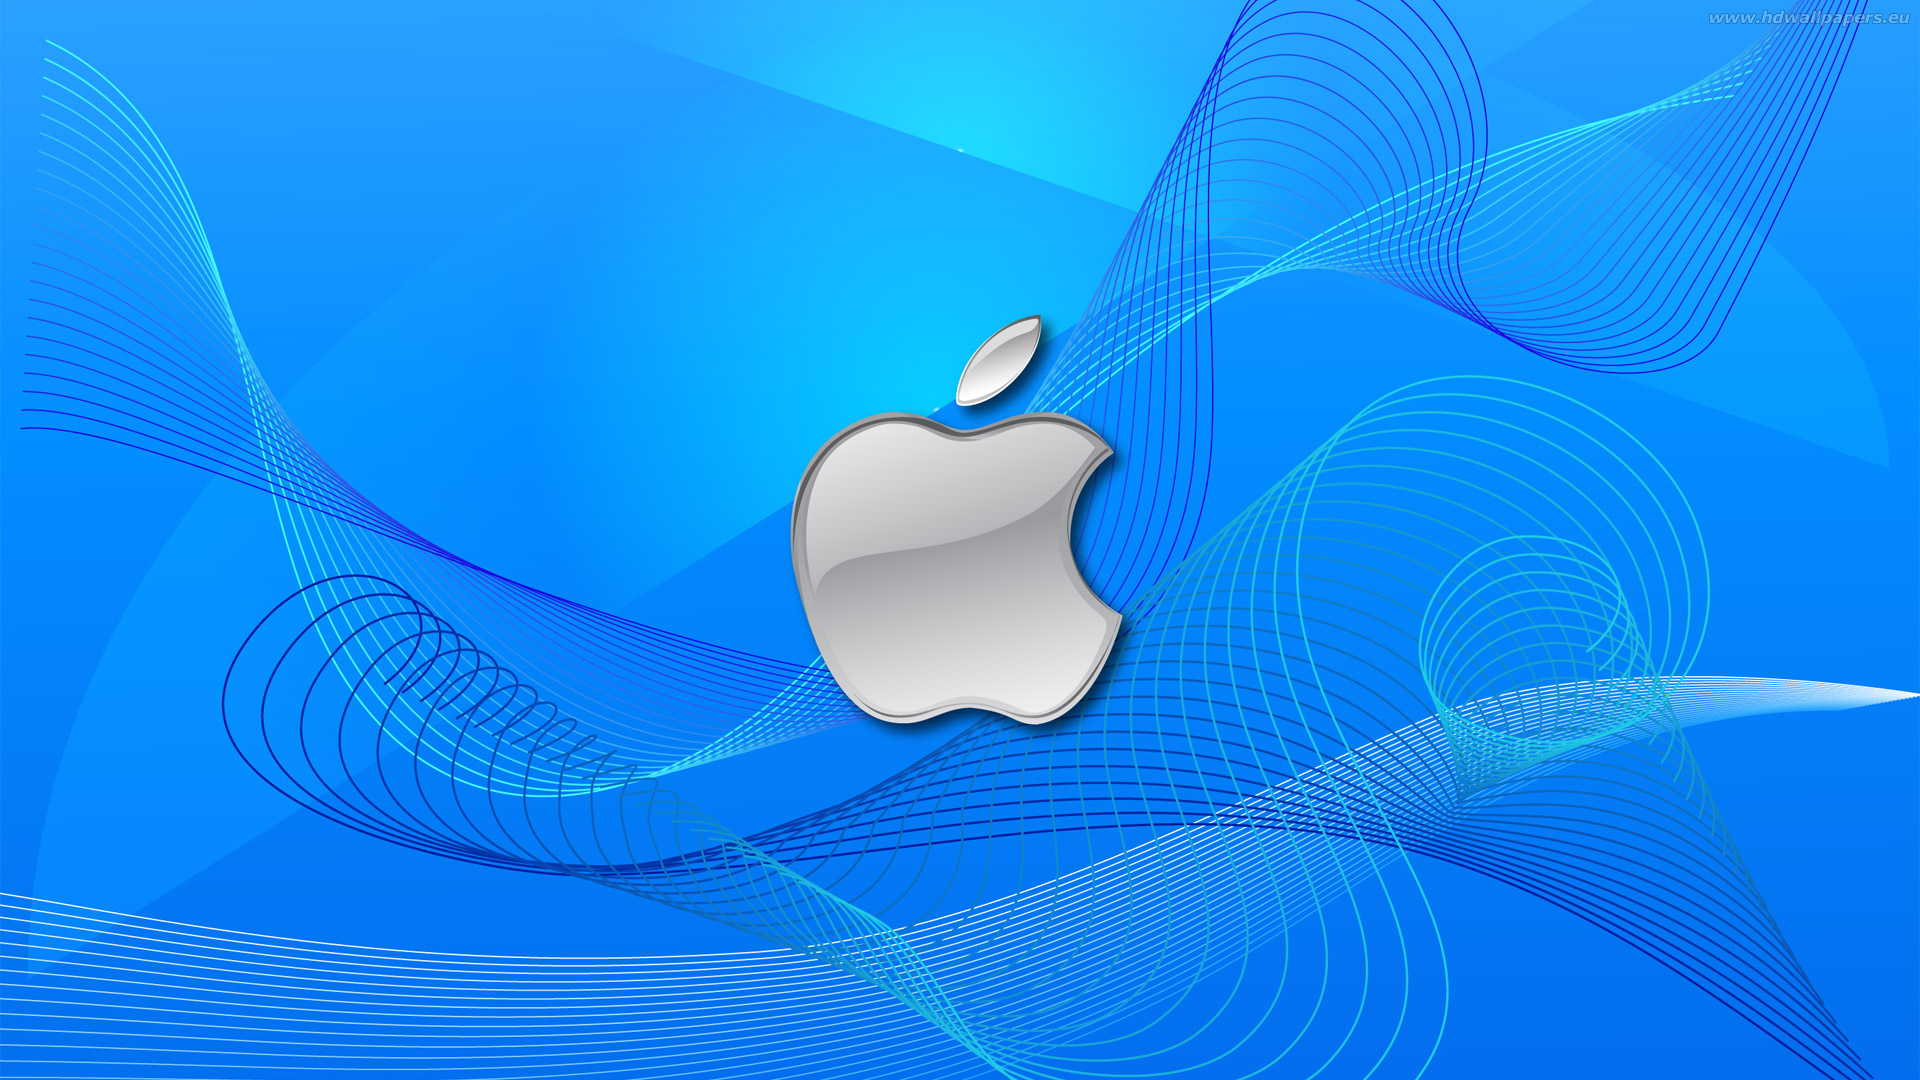 apple-wallpapers-1920x1080